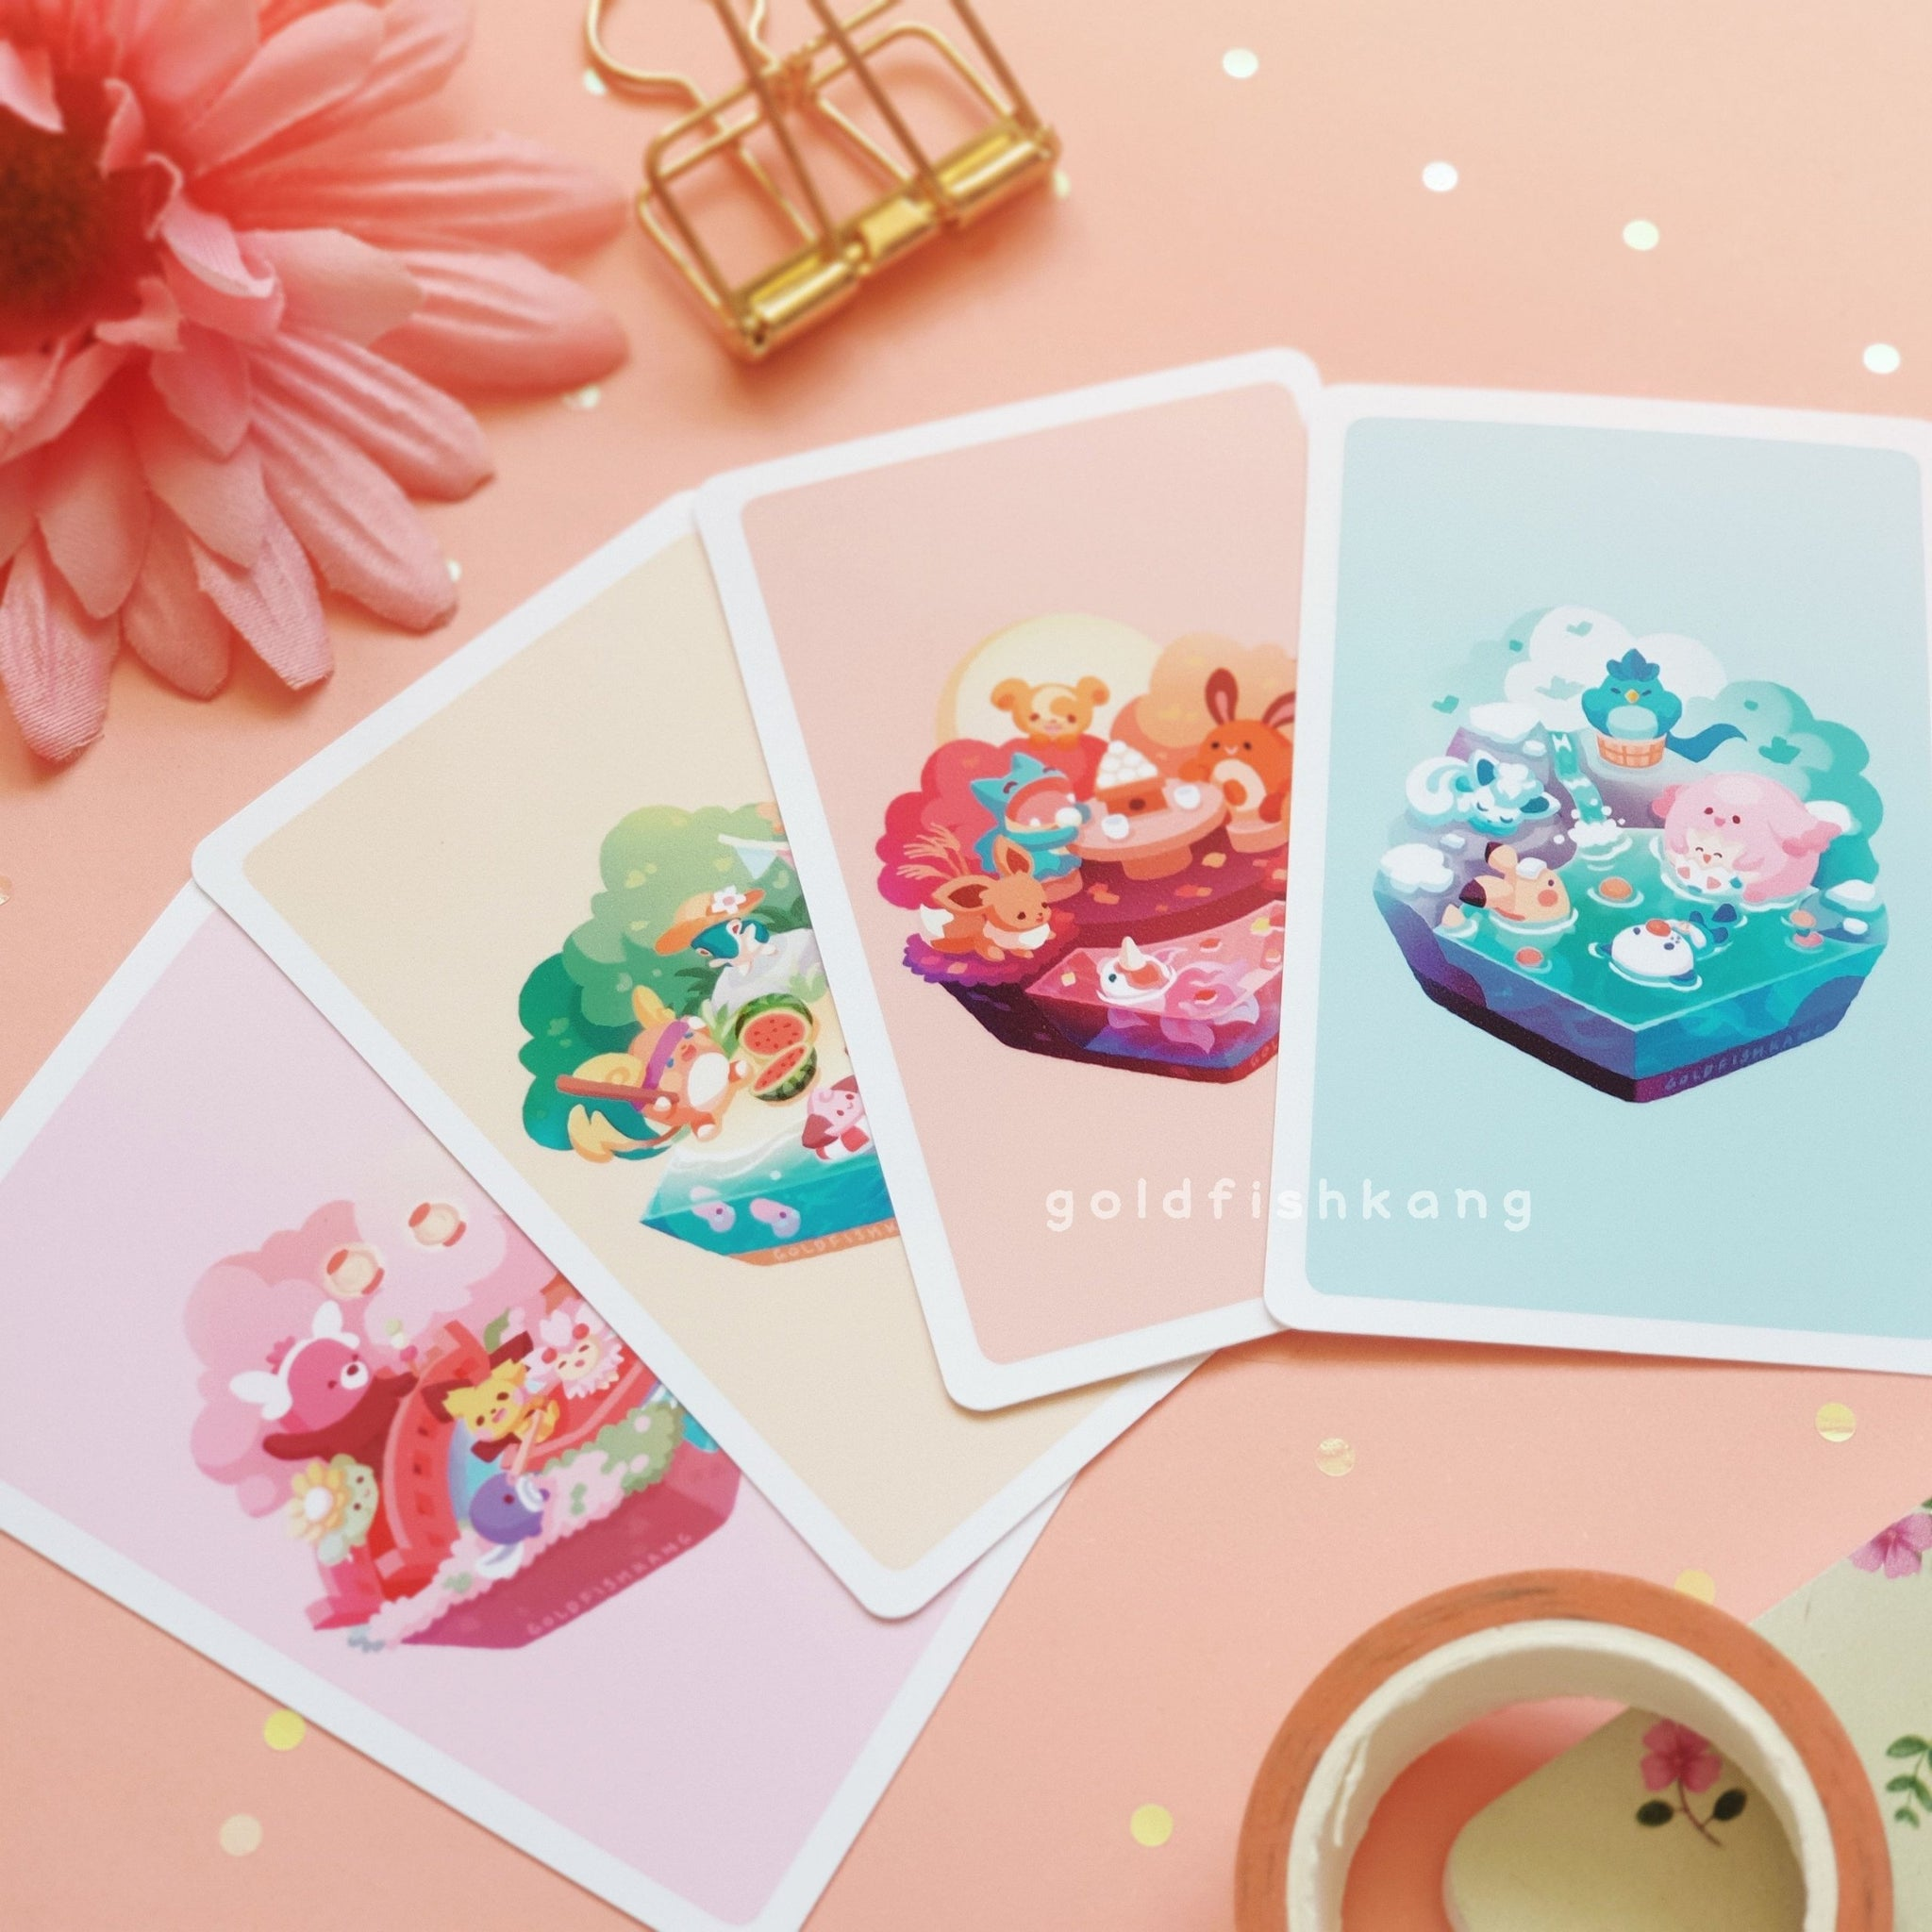 Seasons in Japan Value Set: Mini-Prints - Goldfishkang